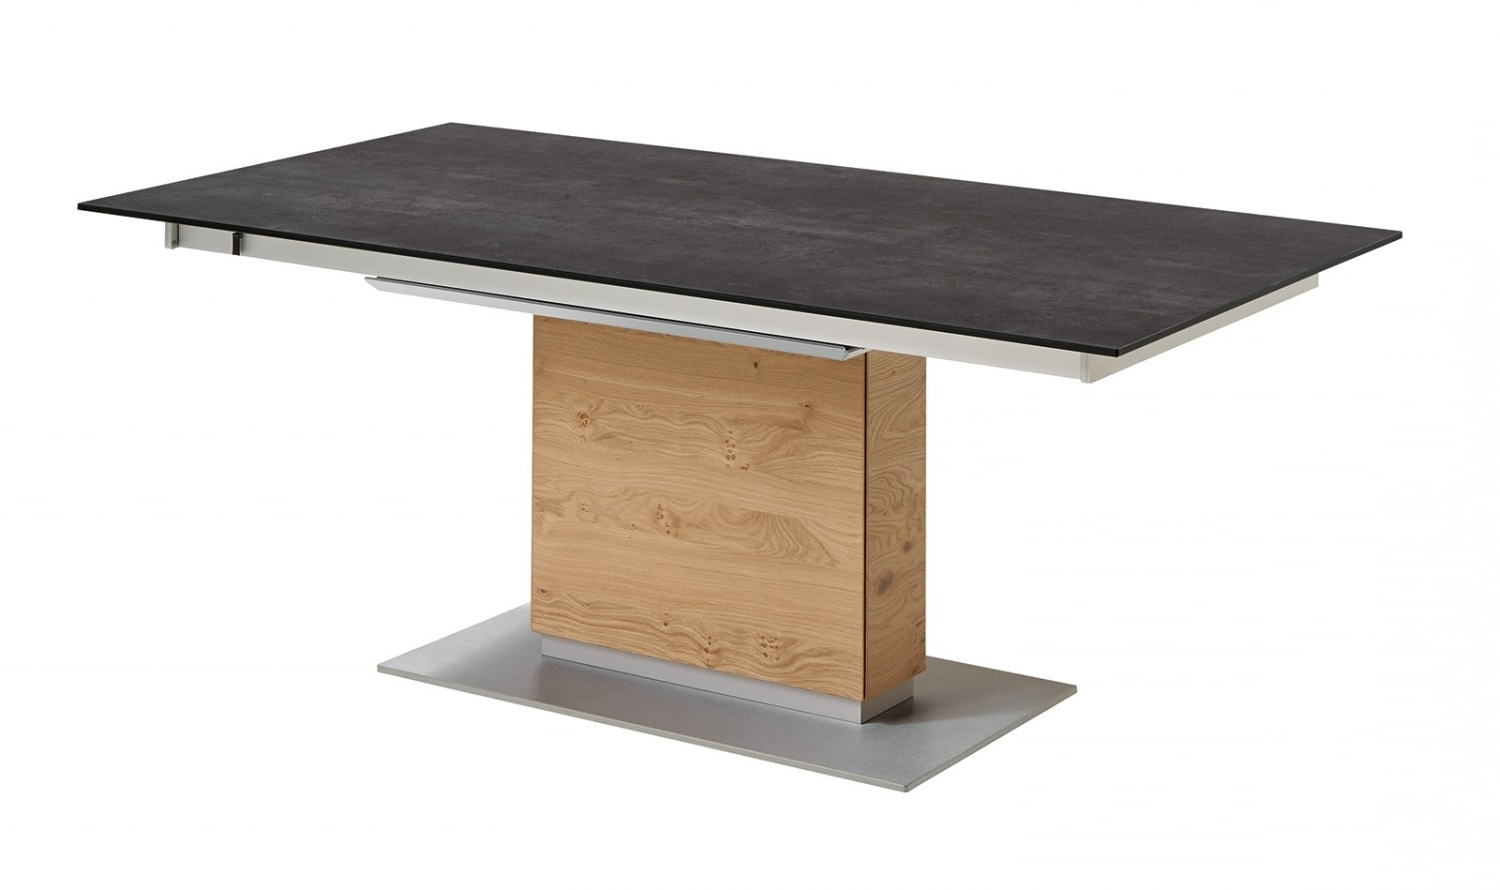 Best And Newest Square Extendable Dining Tables With Regard To Buy Venjakob Et588 Extendable Dining Table (View 4 of 25)